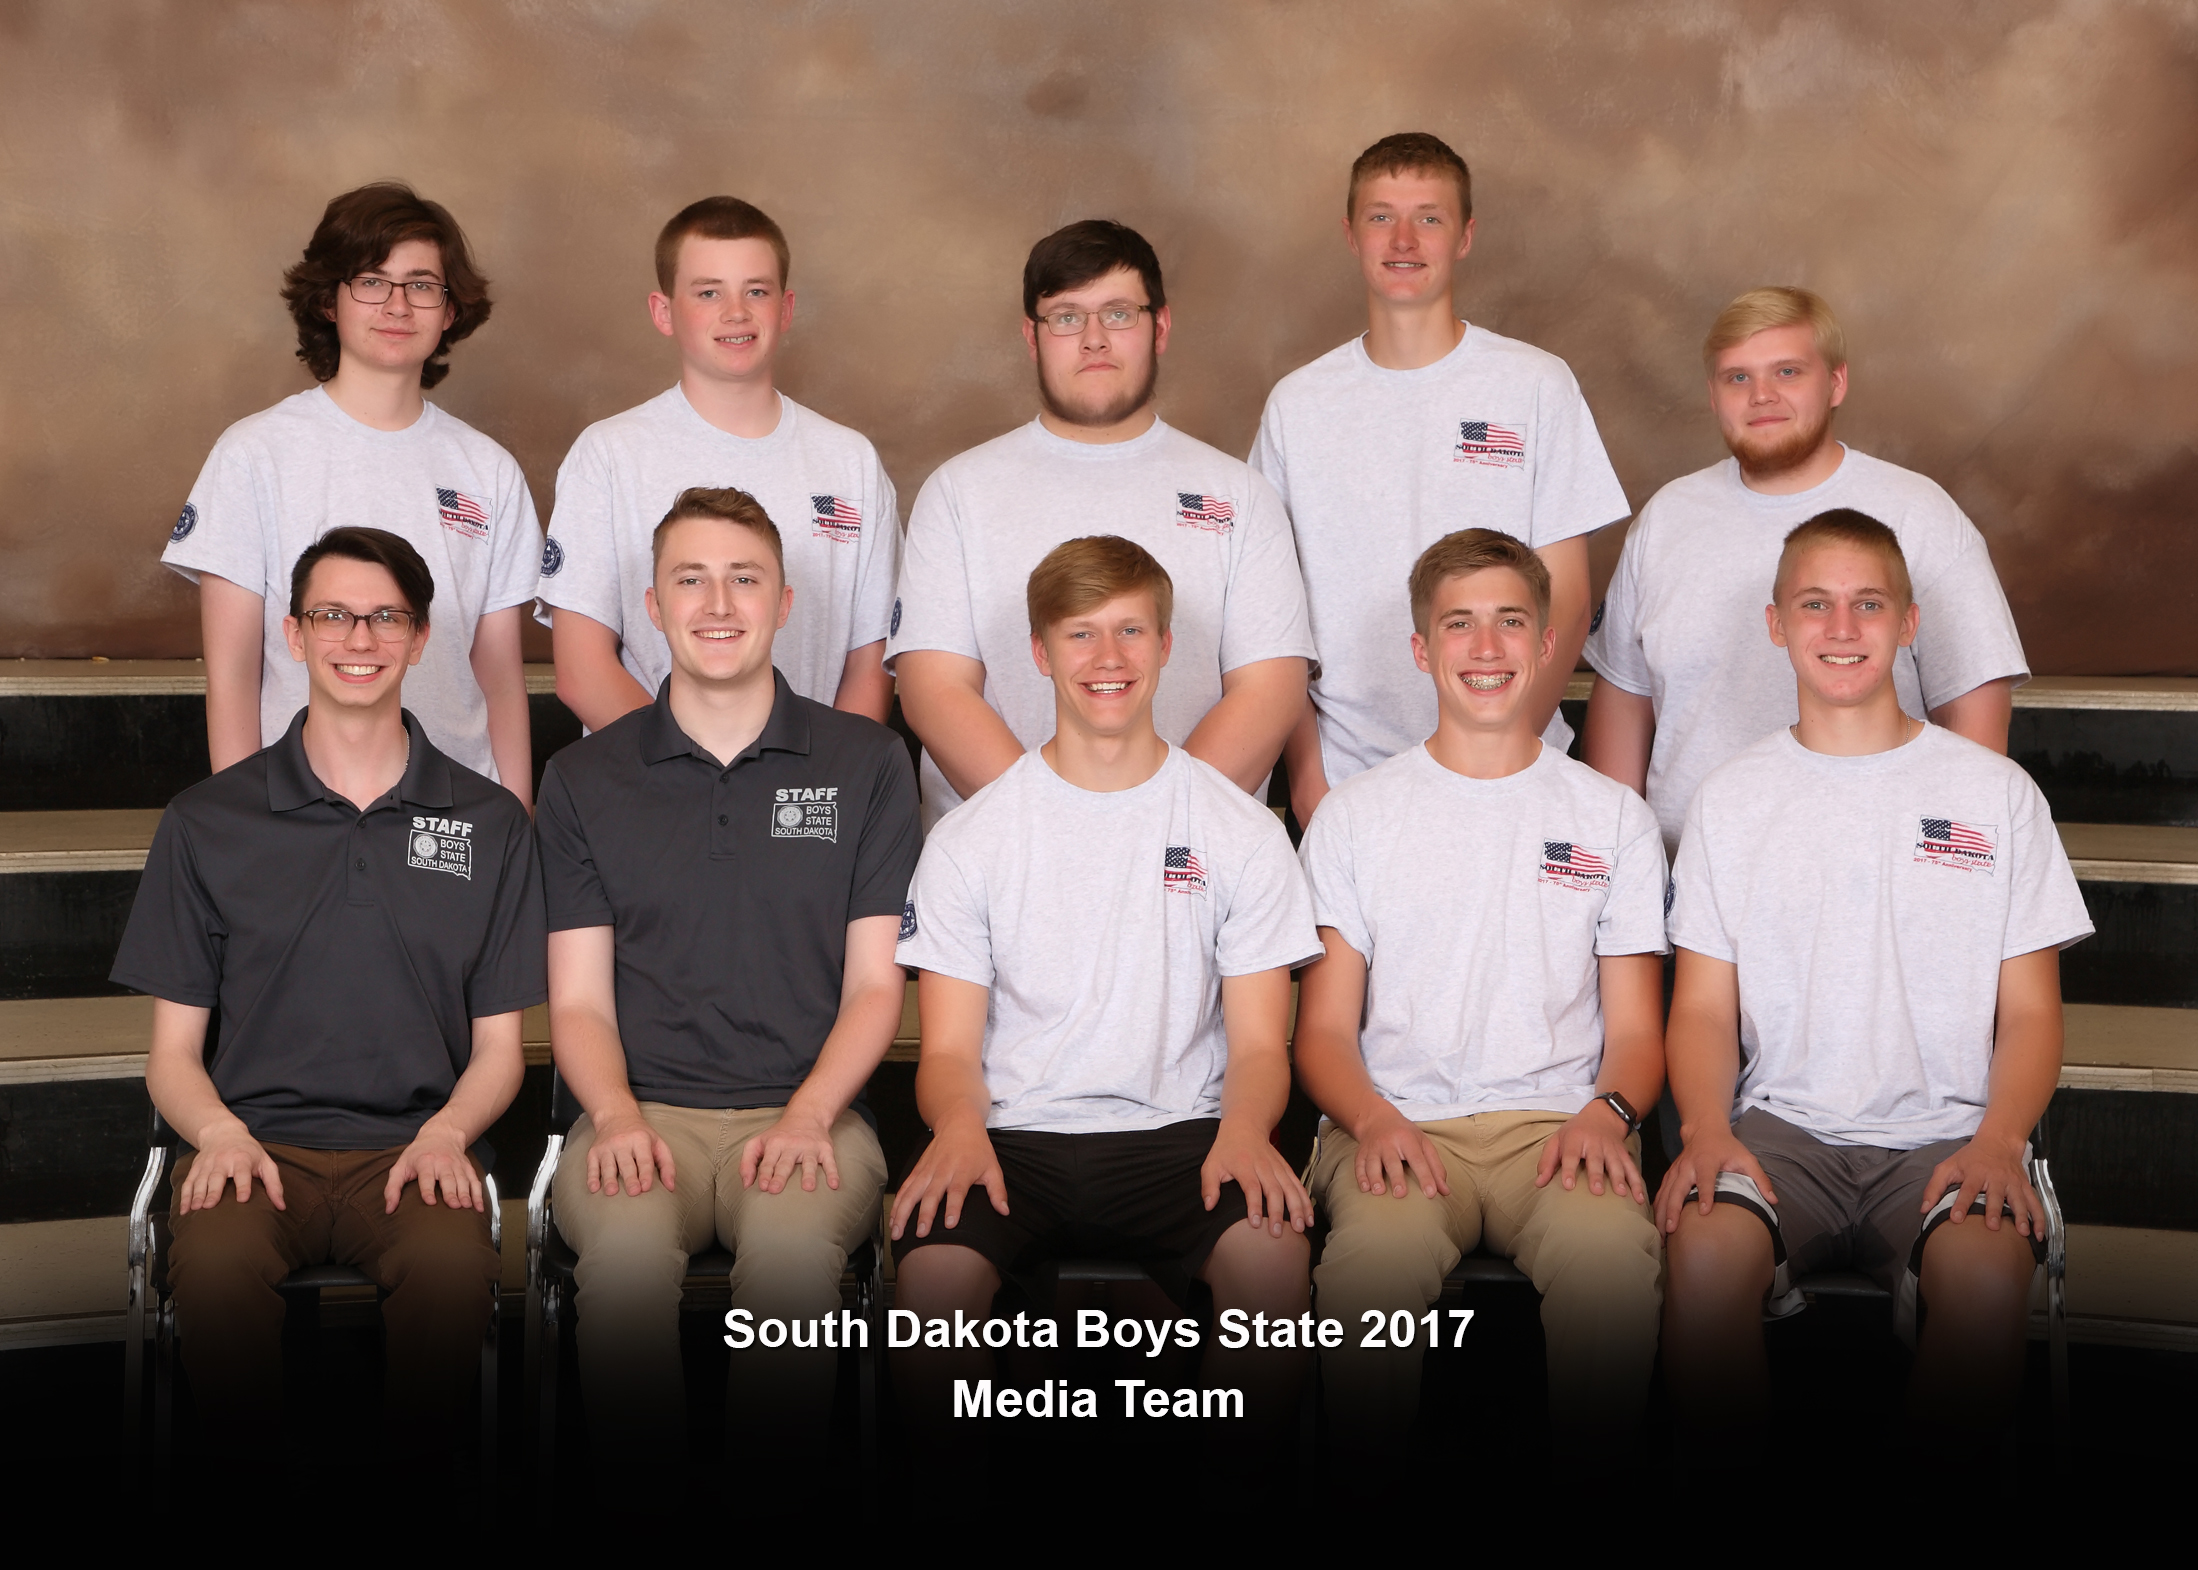 South Dakota Boys State Media Team 2017